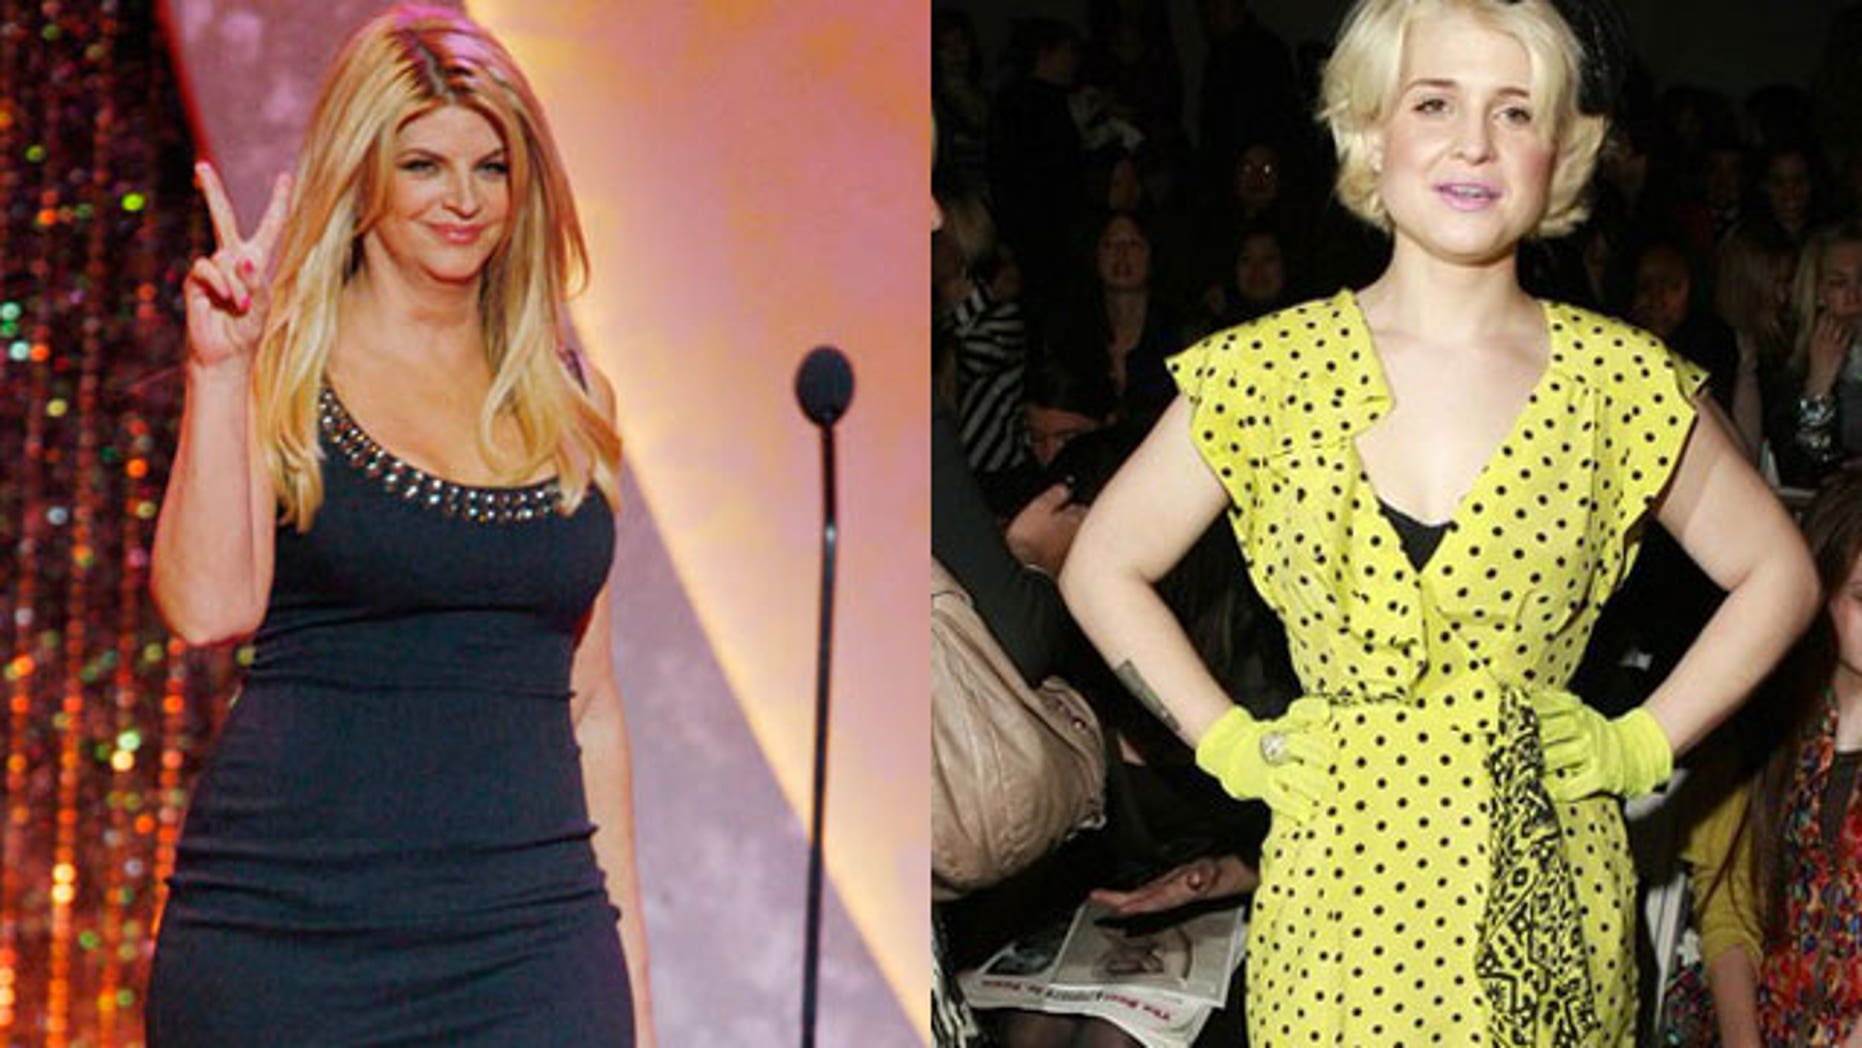 Kirstie Alley and Kelly Osbourne have both been famous for weight loss struggles. (Reuters/AP)